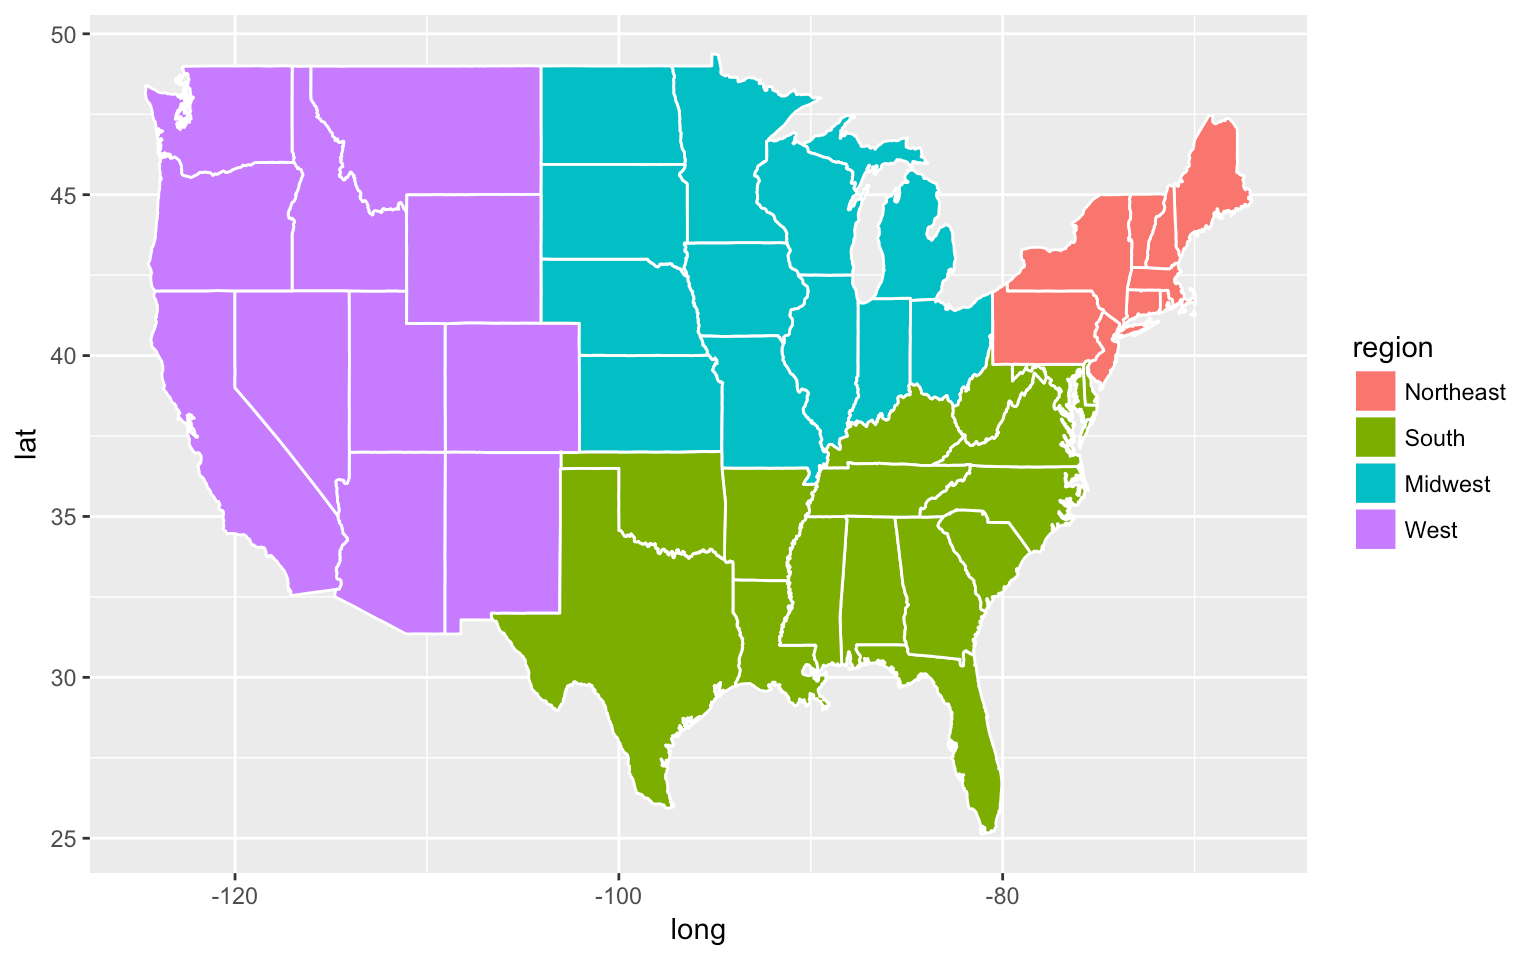 How to Create a Wall Street Journal Data Visualization in R